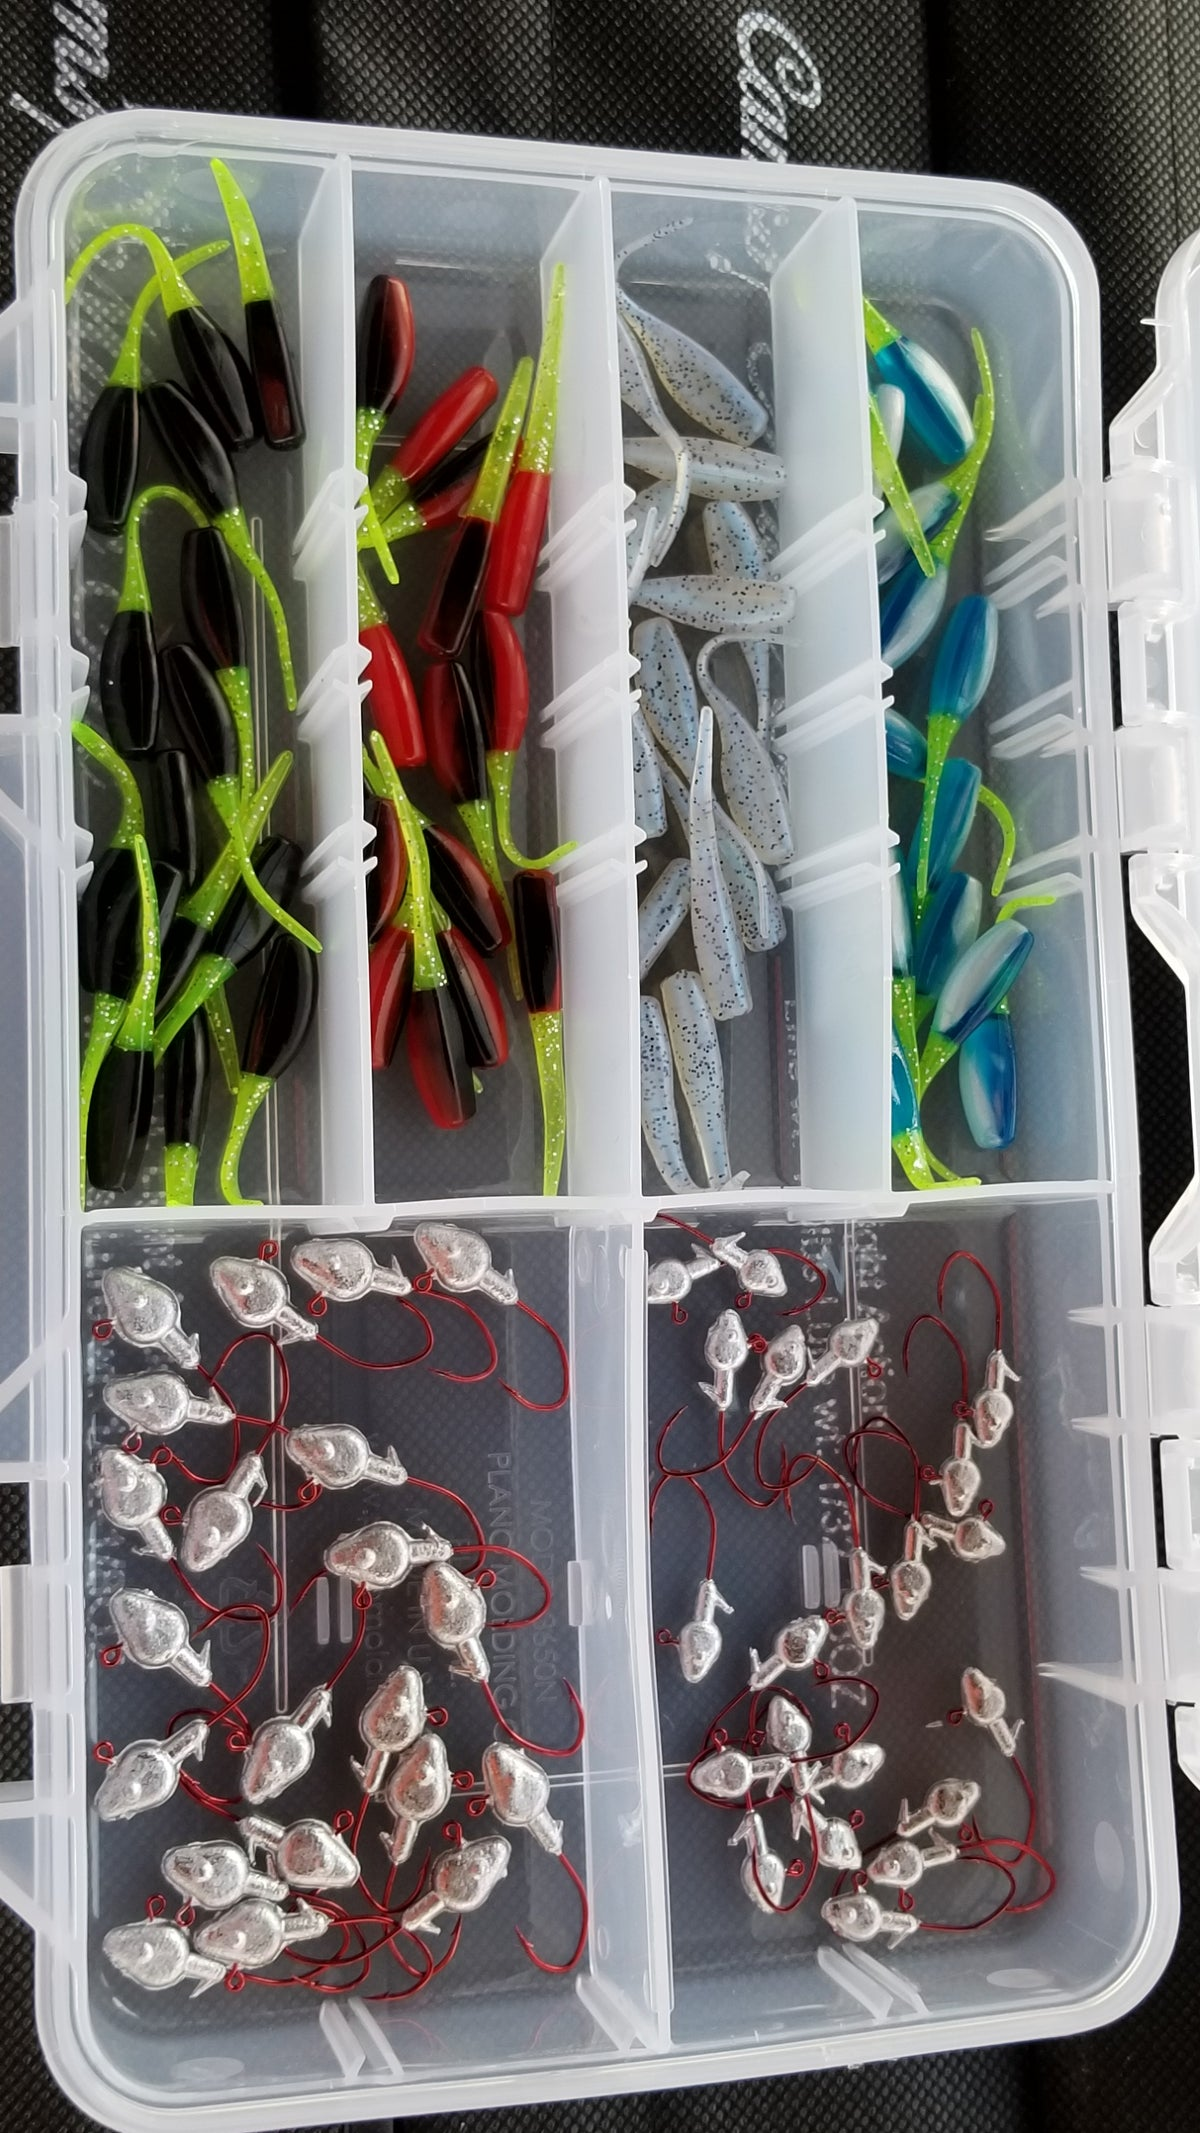 Cam's Nasty Bend Hook Stinger Shad Assortment Package (NO SUBSTITUTIONS)